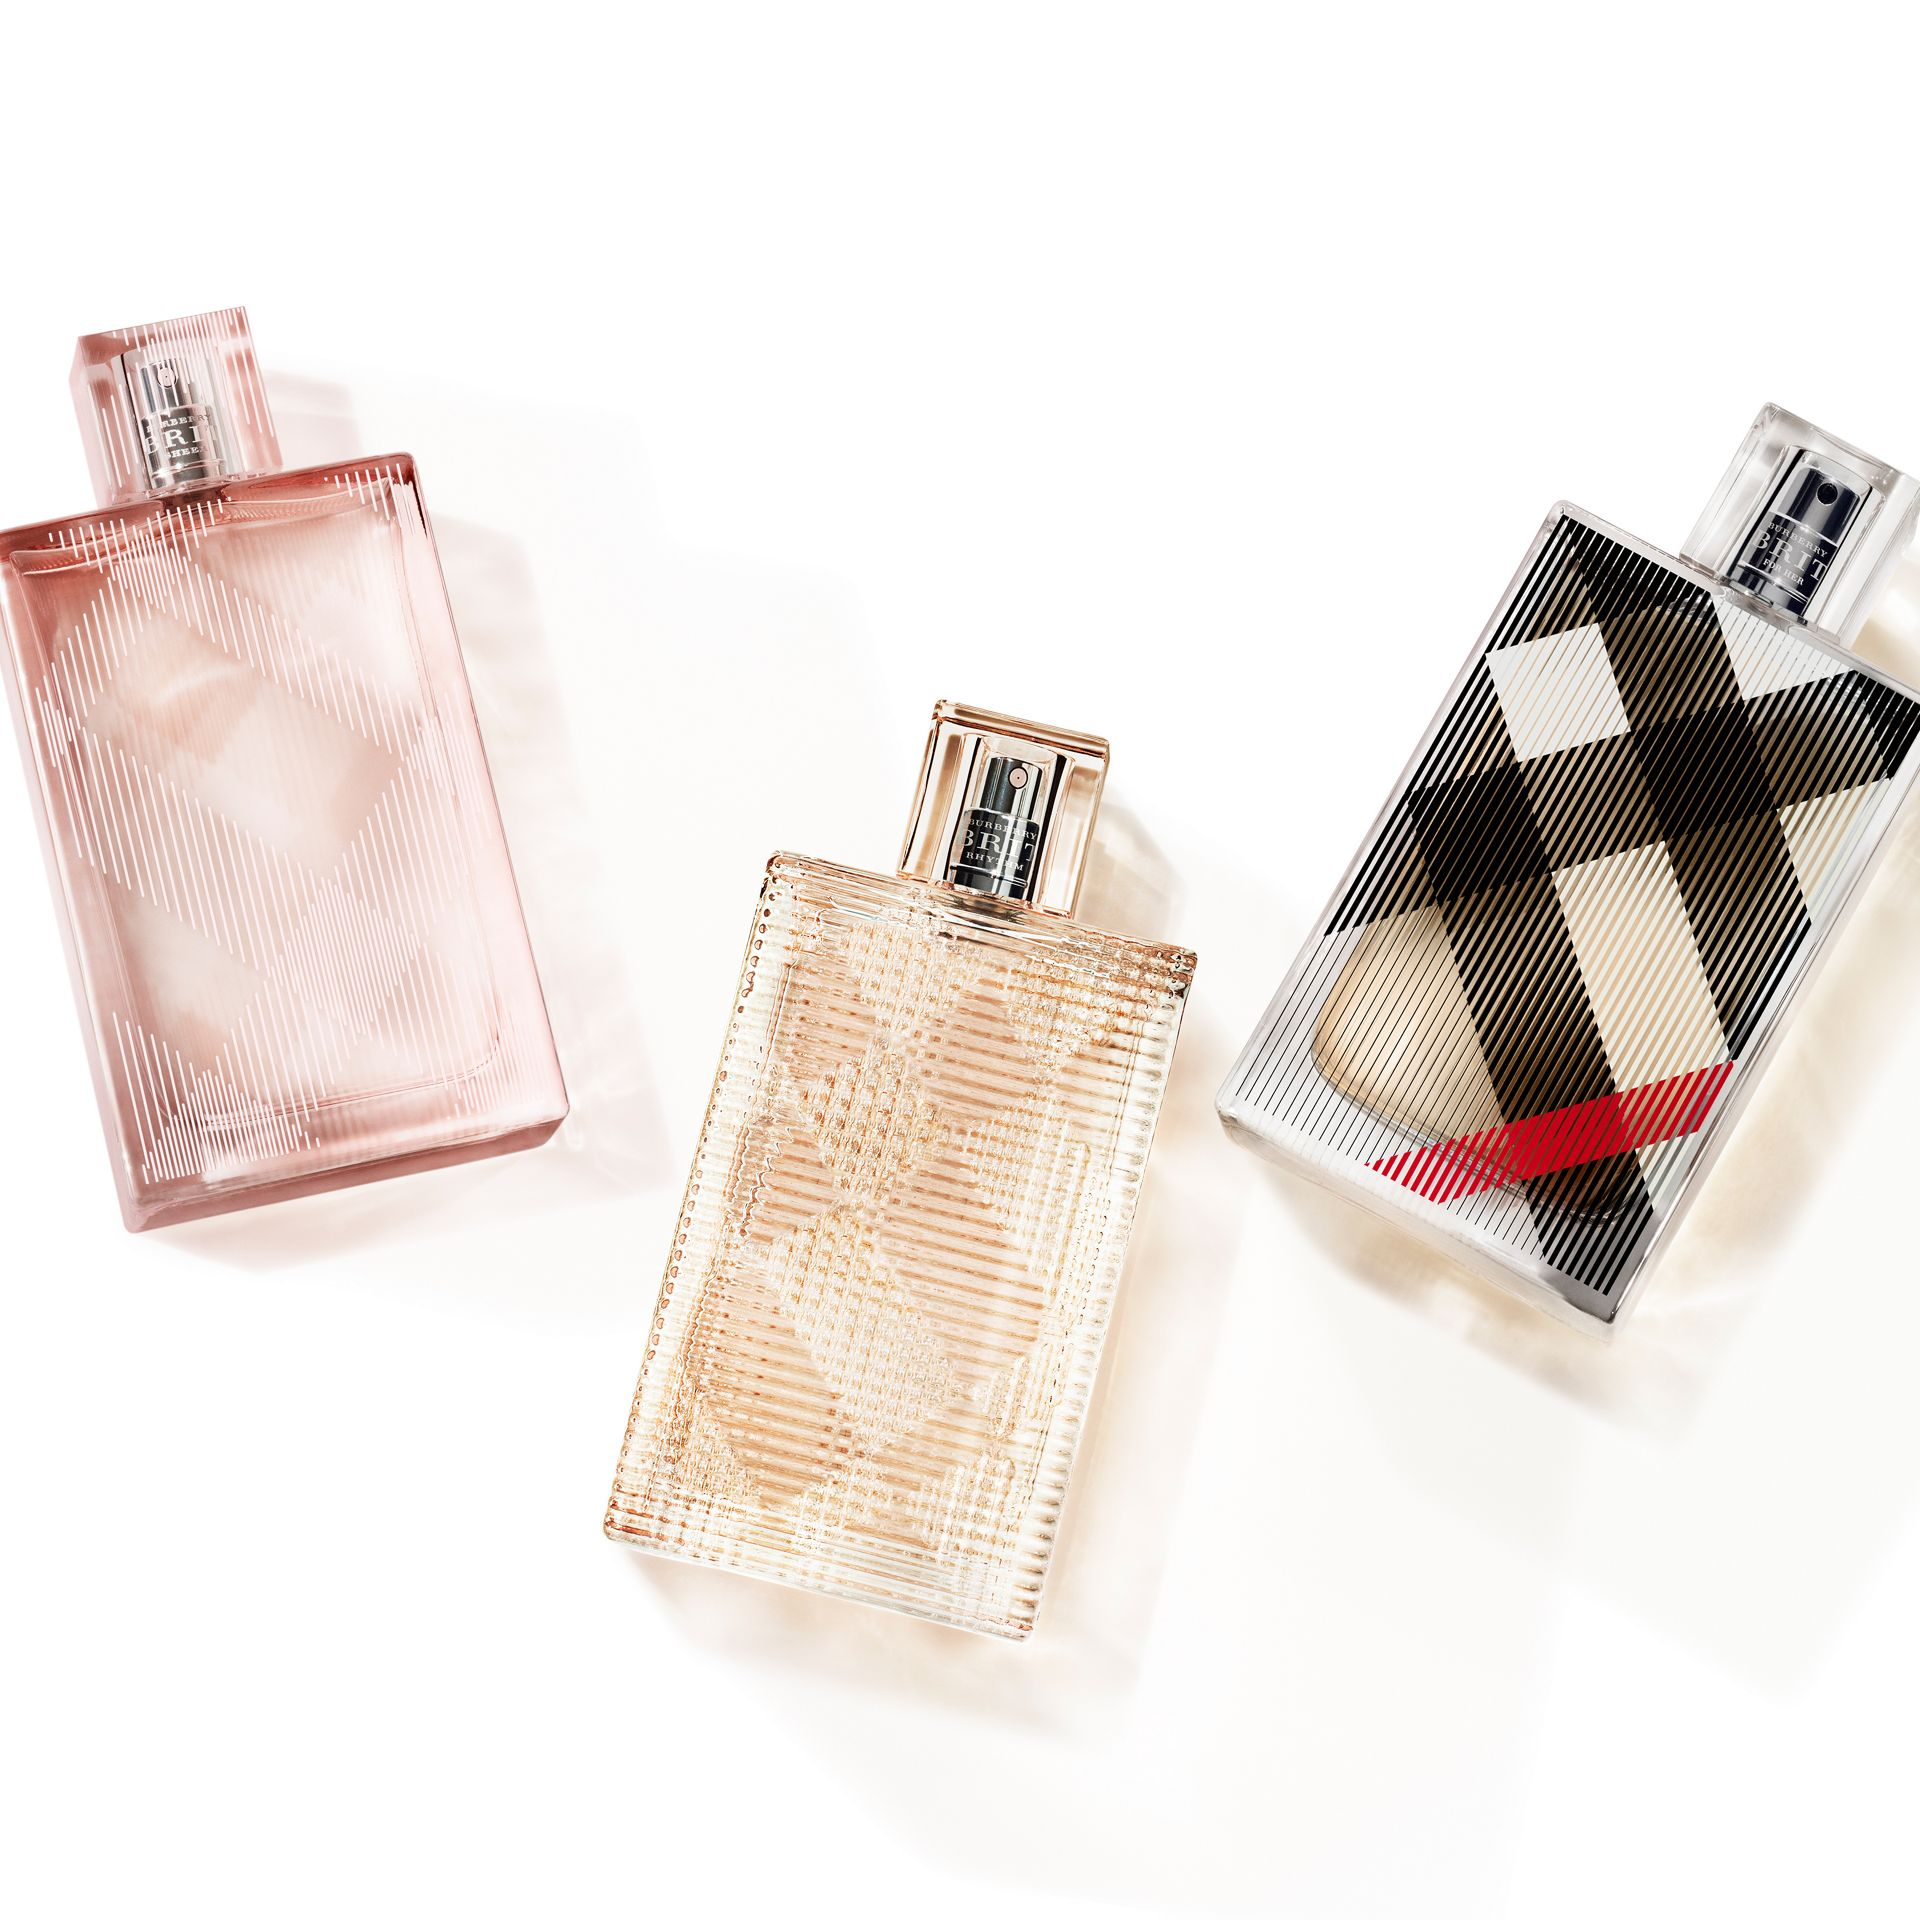 Burberry Brit For Her Eau de Parfum 50 ml - immagine della galleria 4